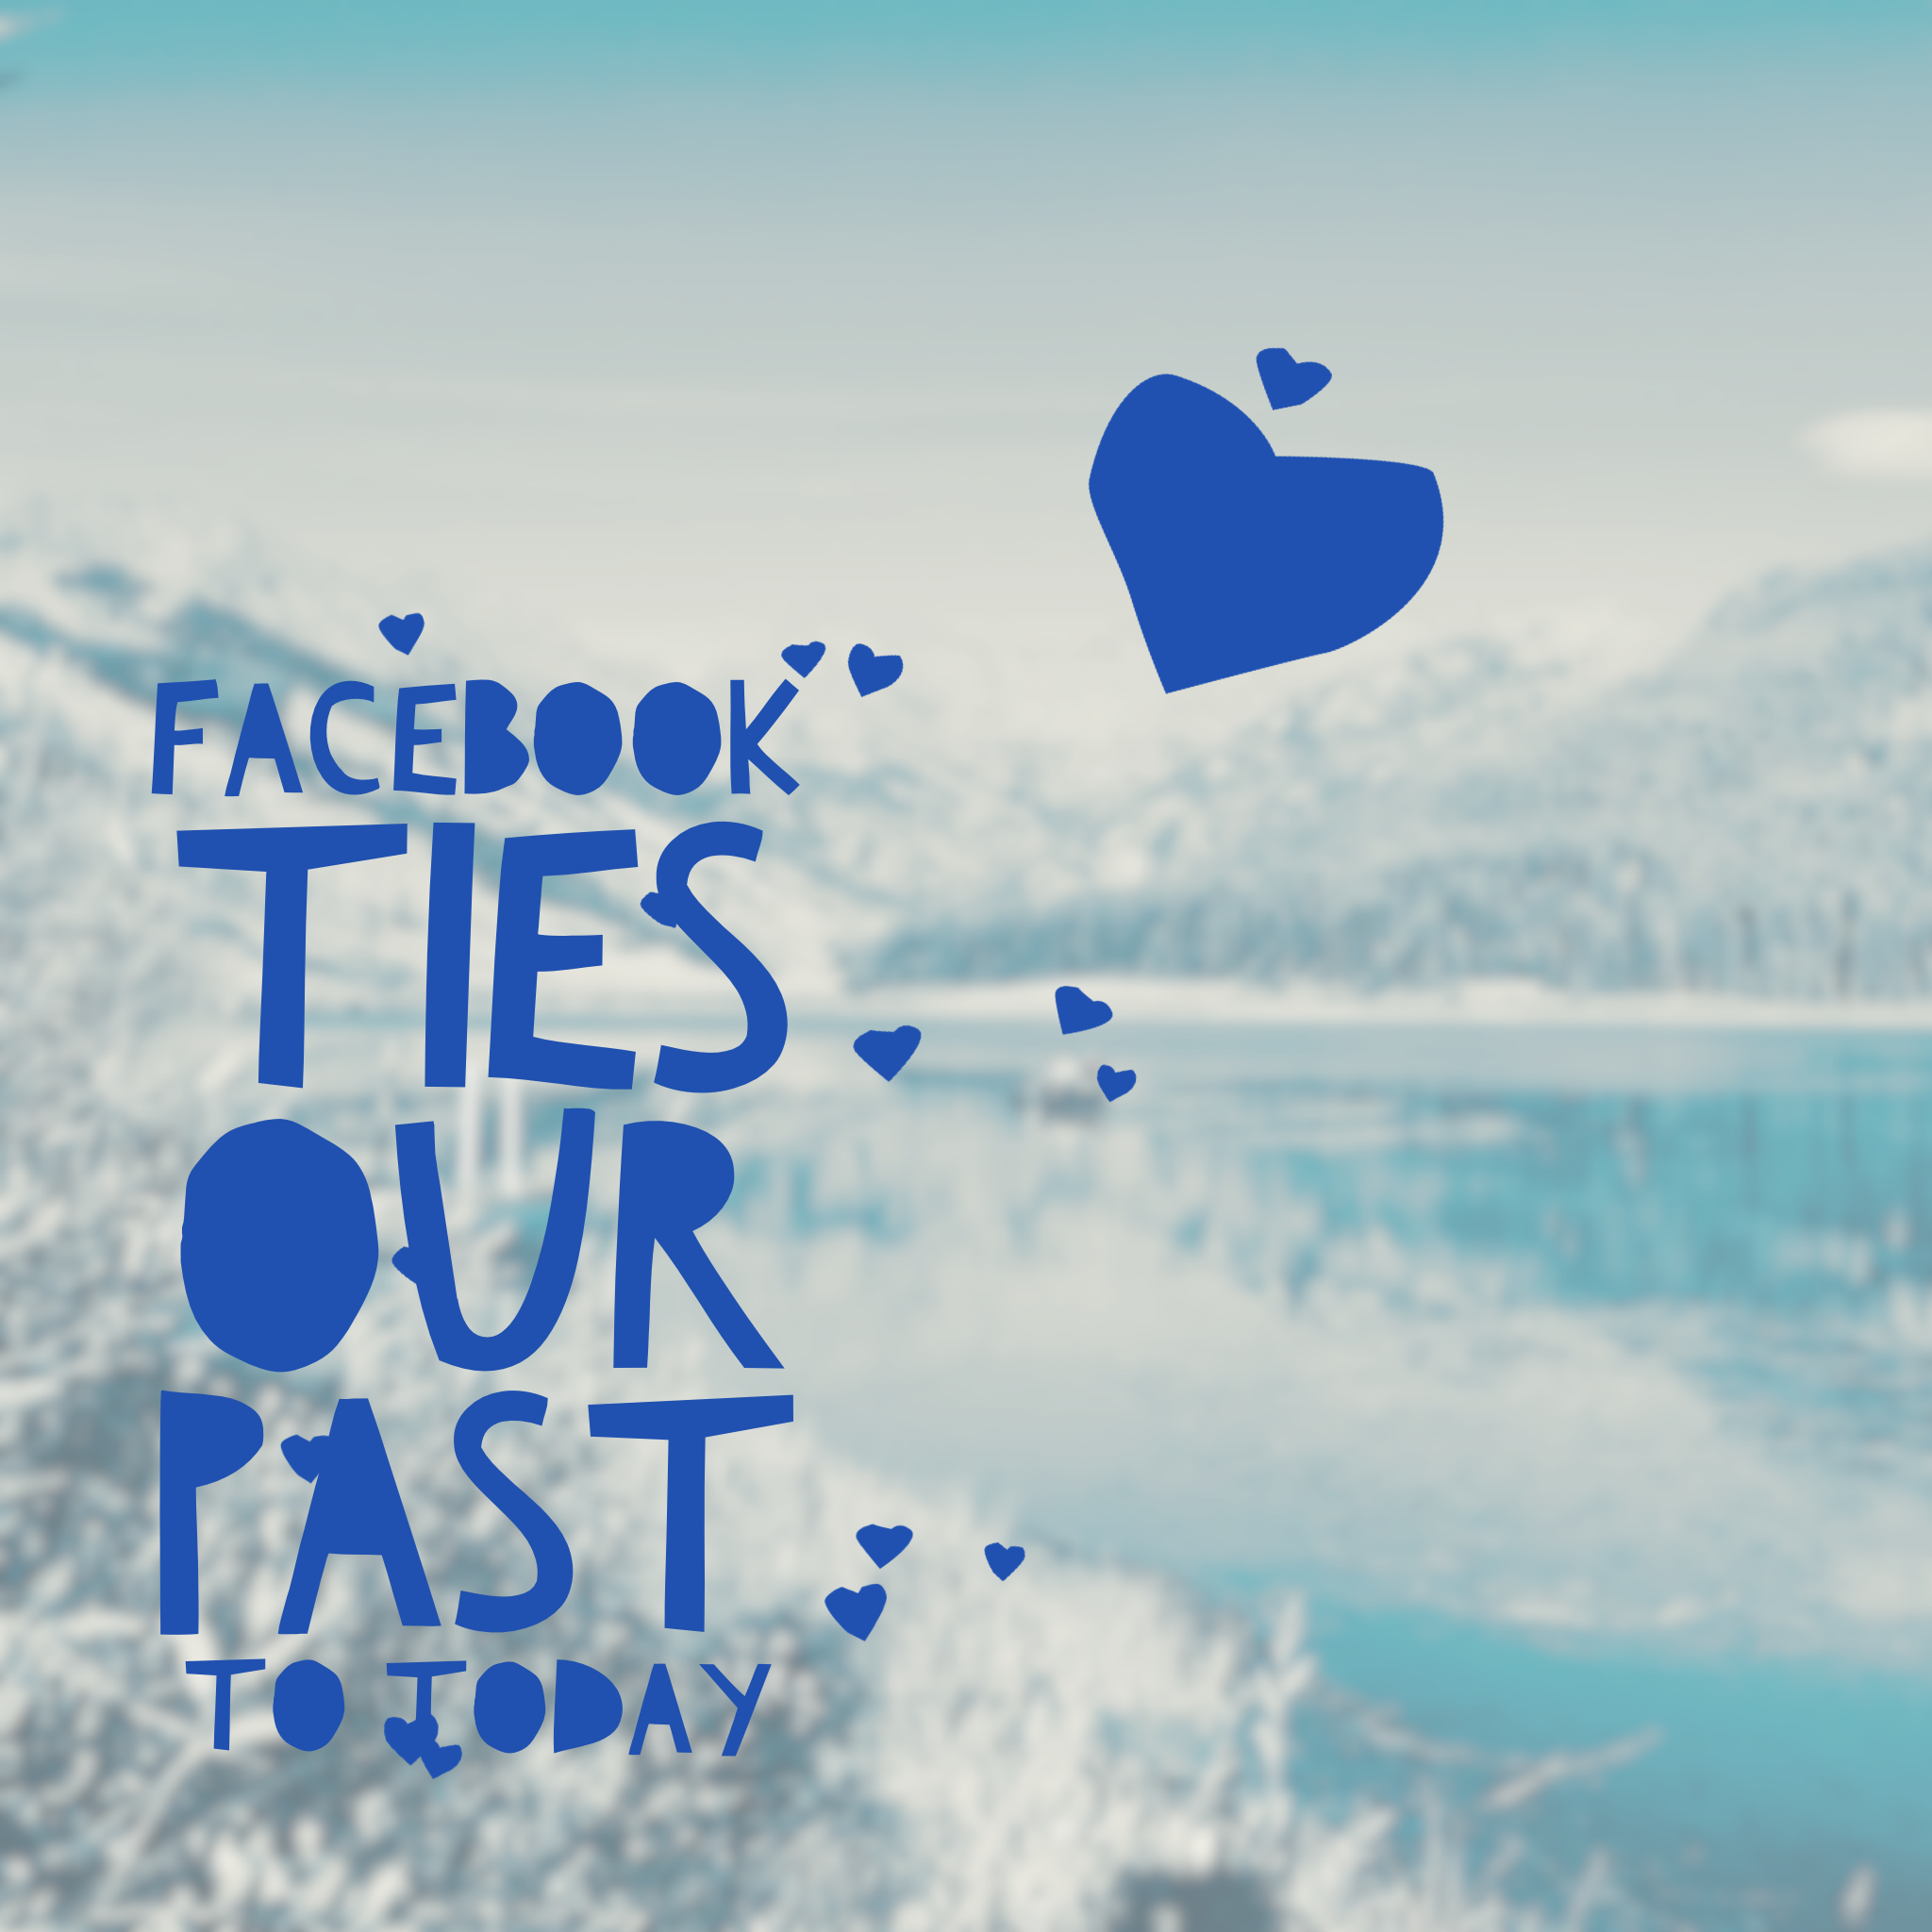 Facebook Ties our Past to Today